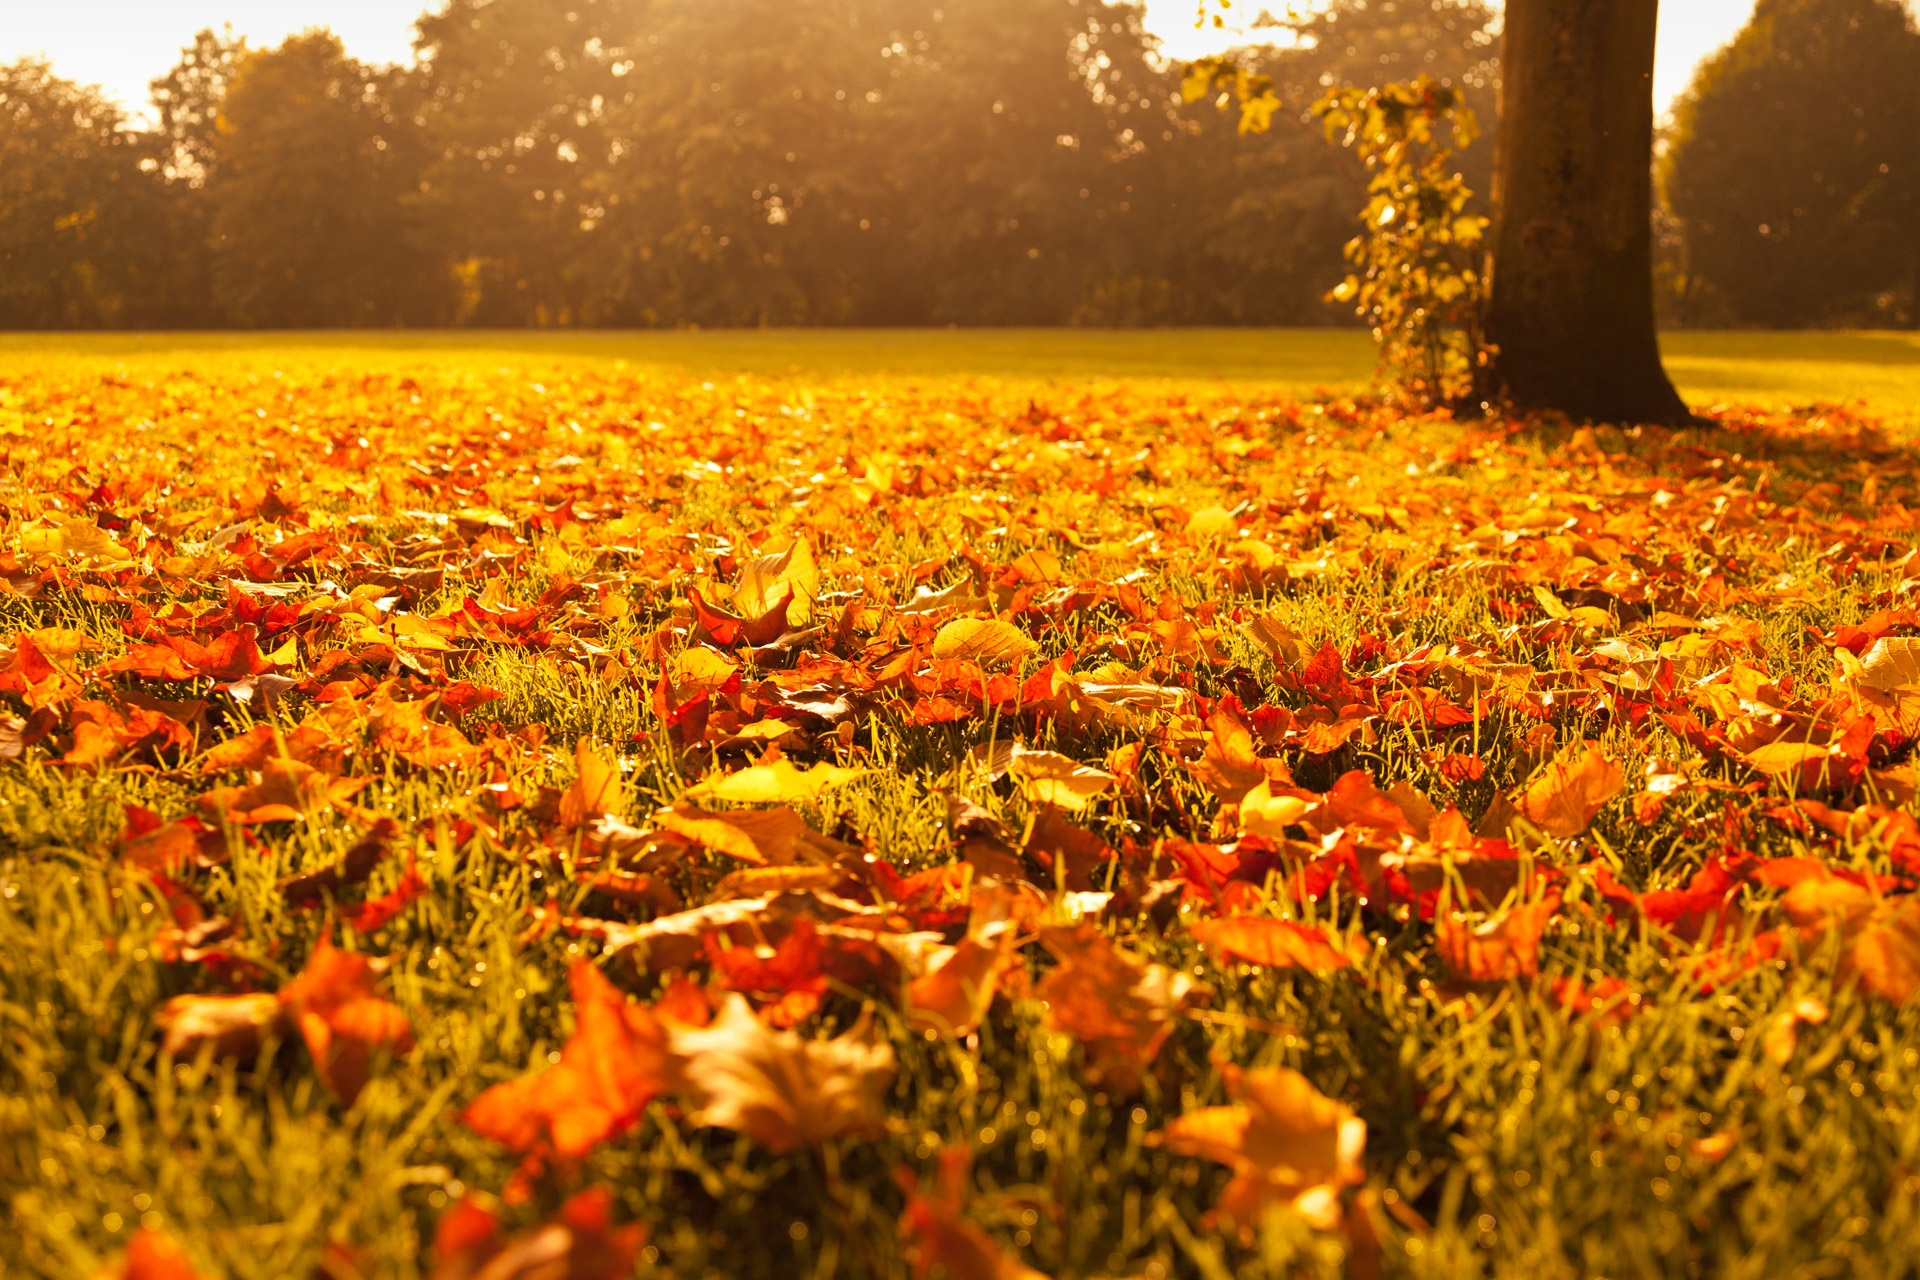 Autumn Leaves At Sunset Free Stock Photo - Public Domain Pictures